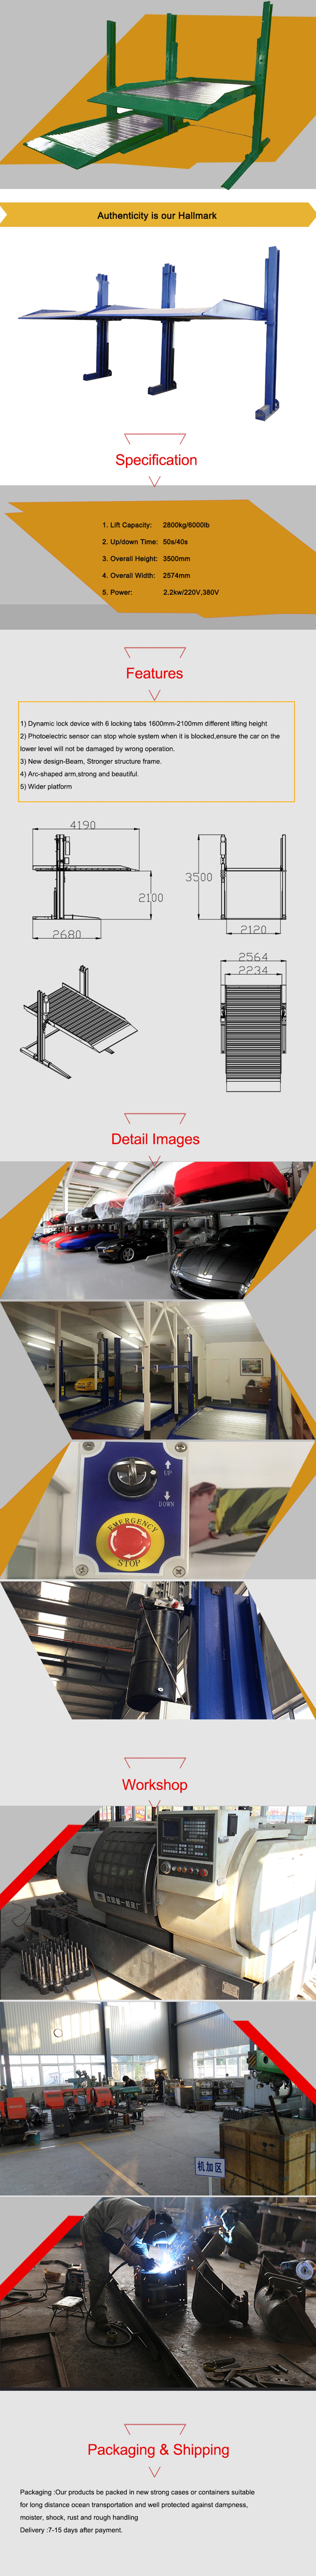 Cheap Car Parking Price/car Repair Tool - Buy Cheap Used Tools,Underground  Garage Lift,Parking Sensor Product on Alibaba com